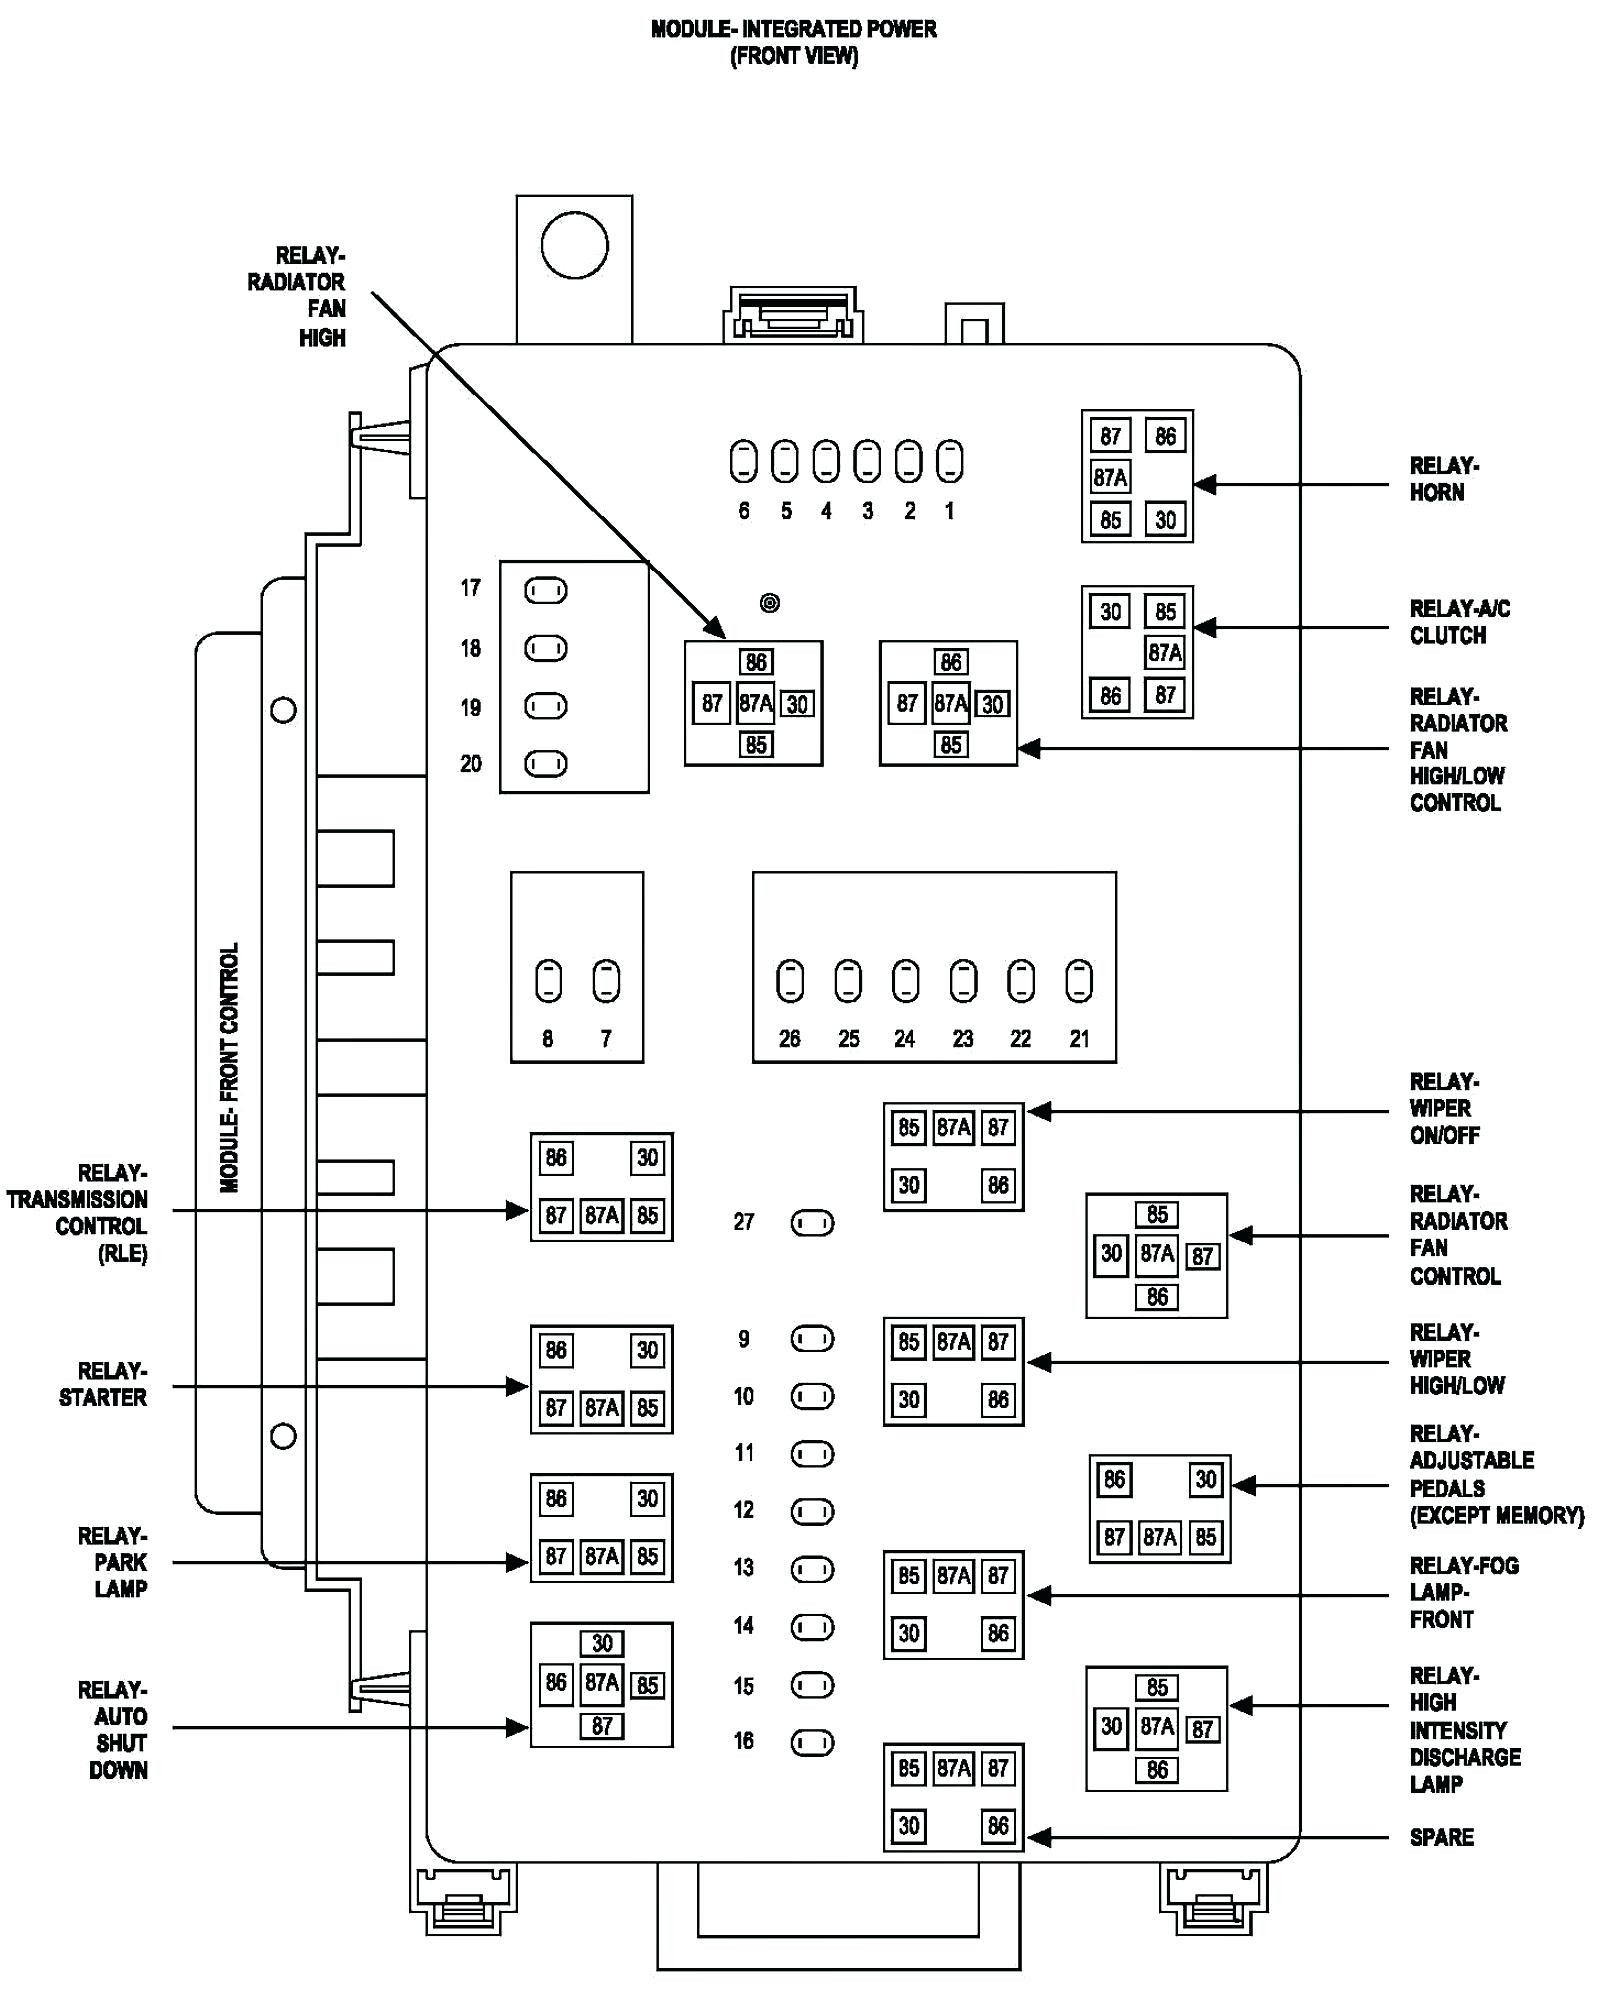 2007 dodge charger fuse diagram wiring diagram directory 2007 dodge charger starter relay 2007 dodge charger rt 57 fuse box